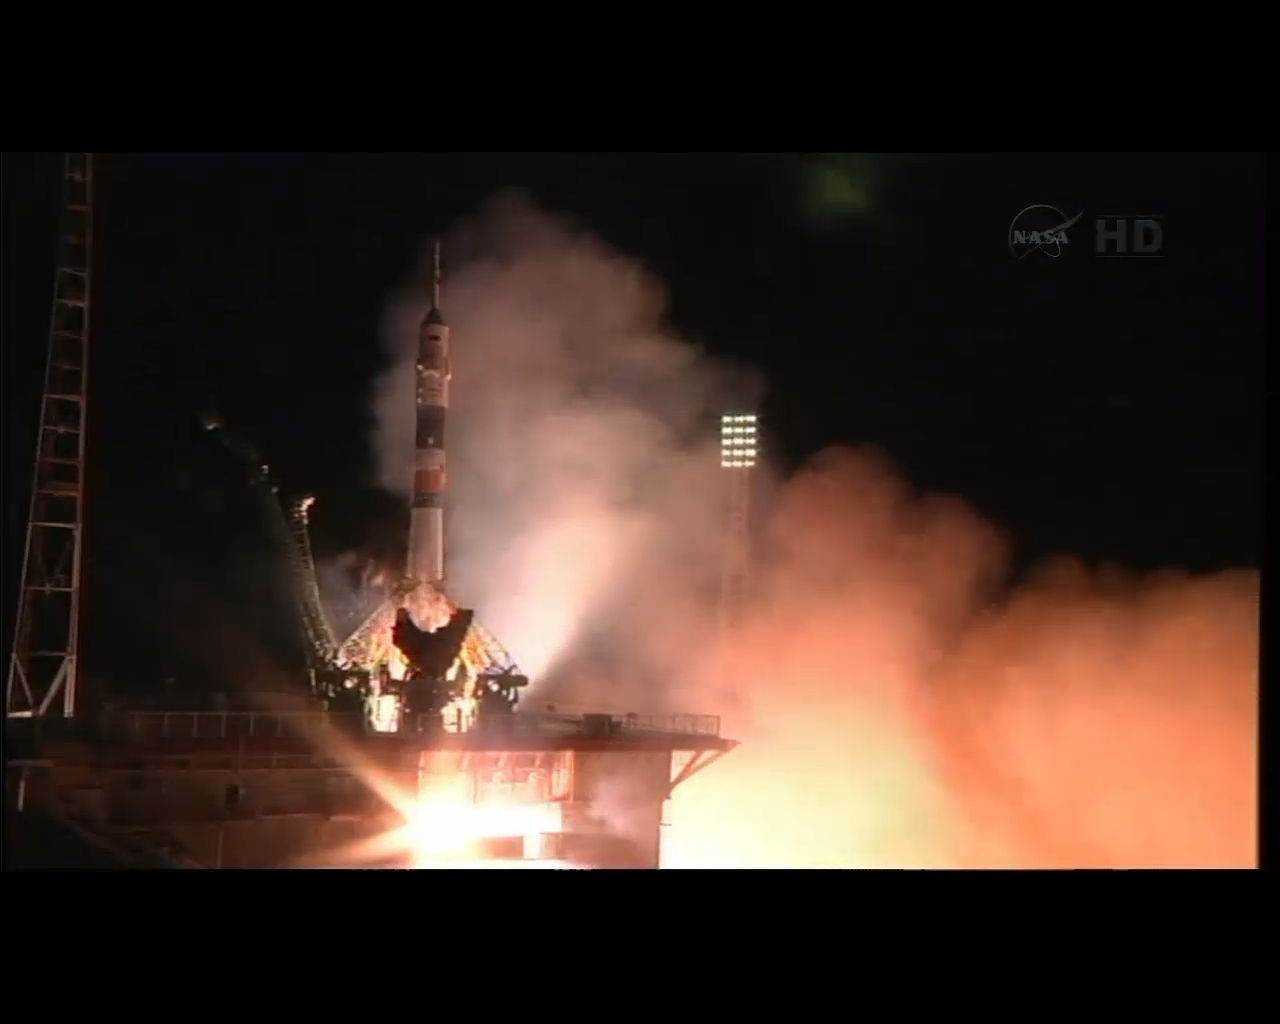 Astronauts Launch to Space Station on Express Trip